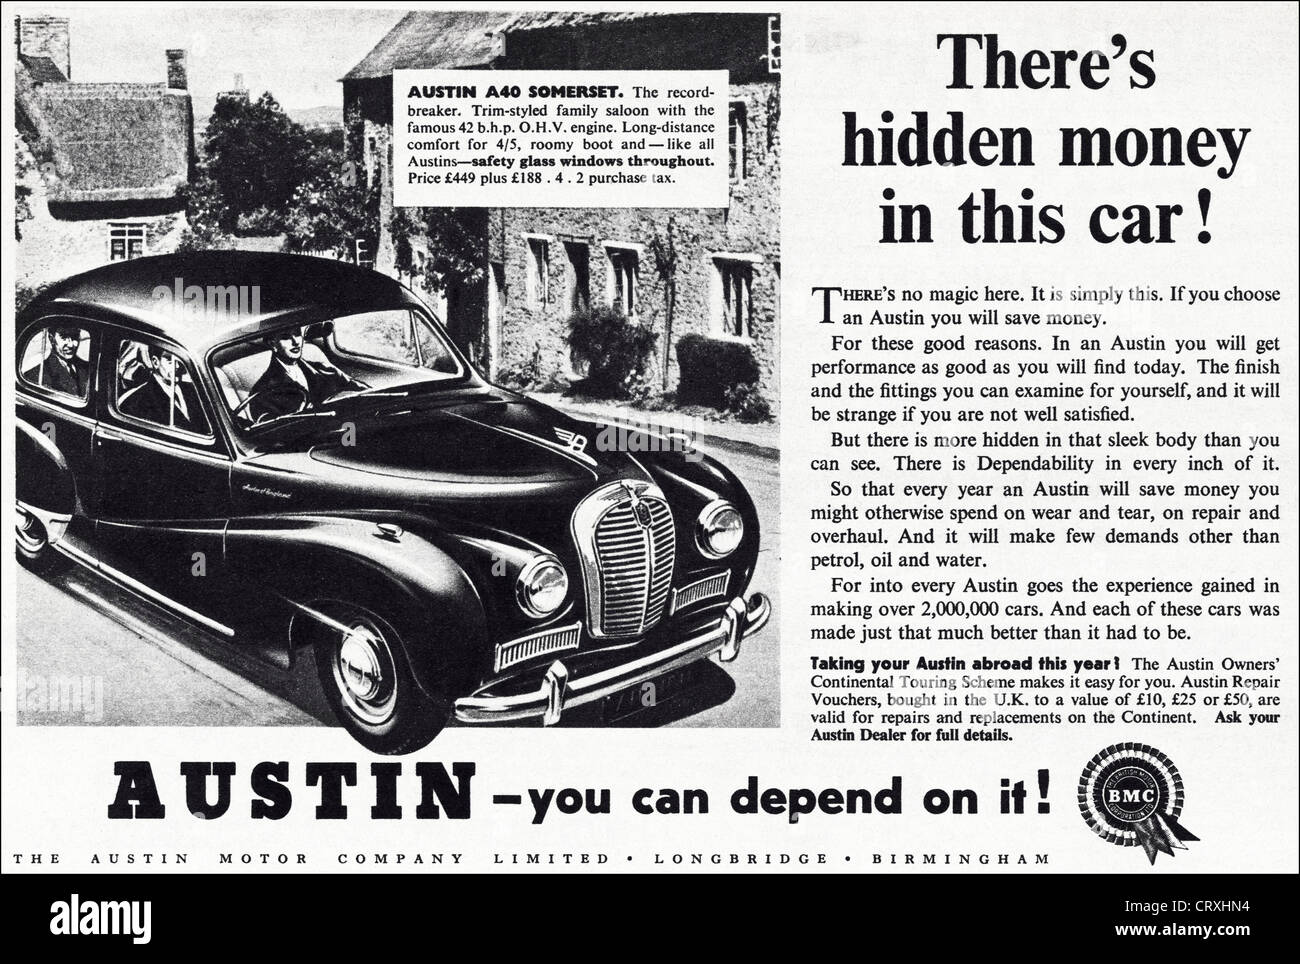 AUSTIN A40 SOMERSET saloon car advert. Original 1950s vintage print ...